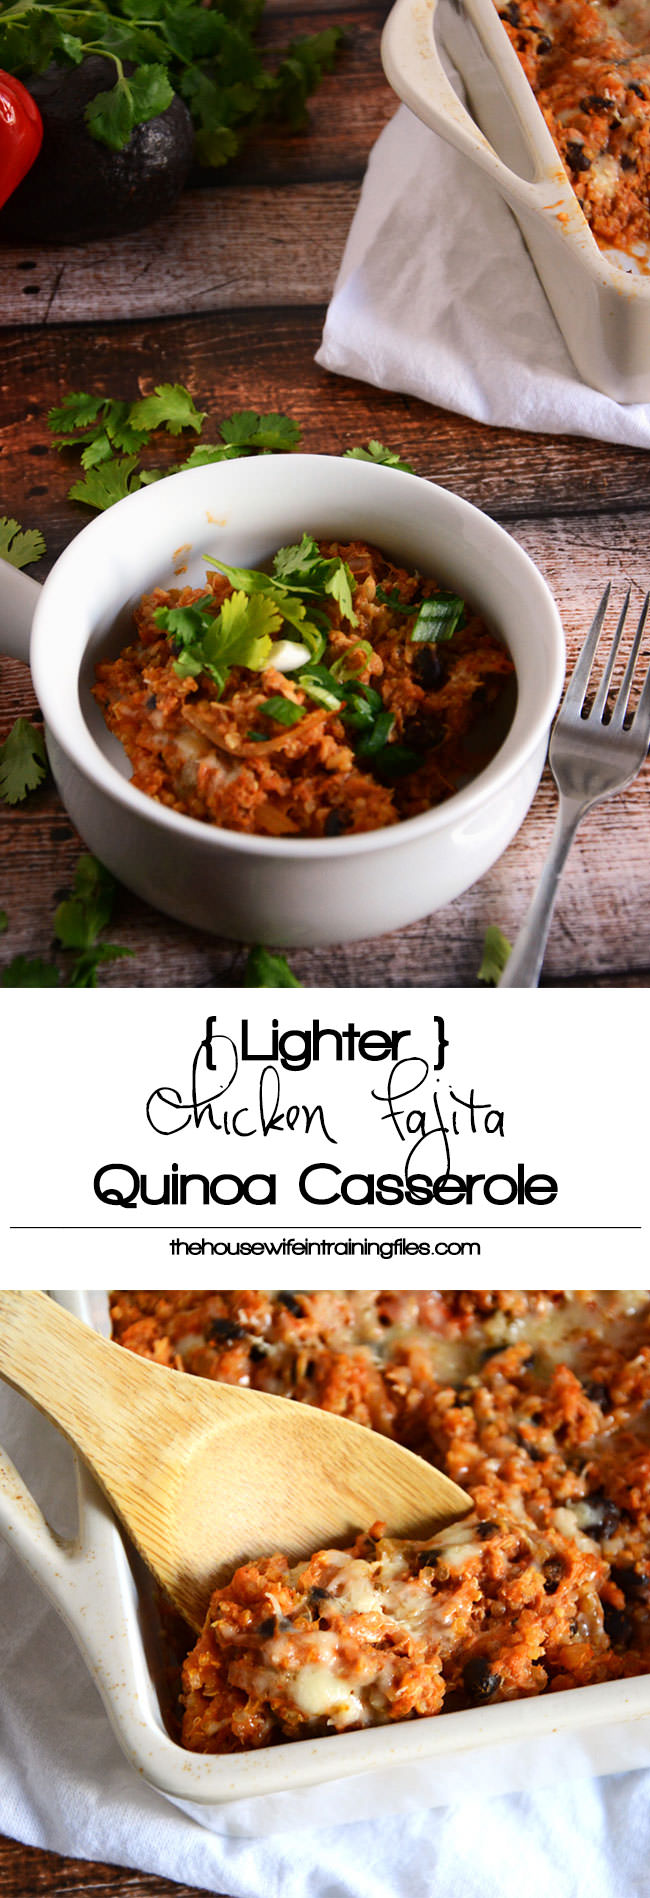 All the flavors of your favorite Tex Mex dish but wrapped into a quinoa dish! This Lighter Chicken Fajita Casserole is a sync to throw together, making it perfect for busy nights! #quinoa #glutenfree #mexican #texmex